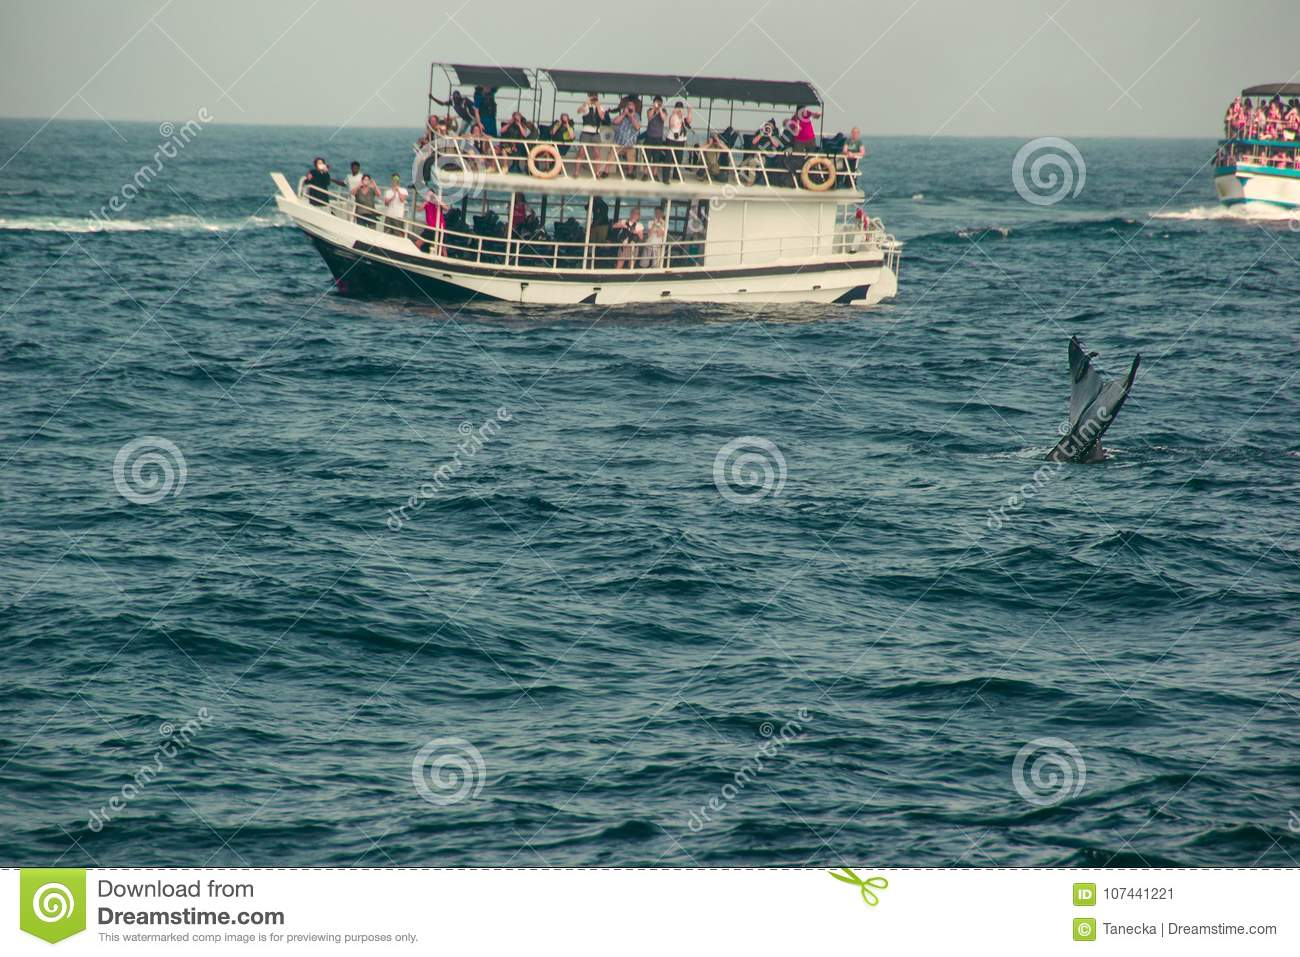 Blue whale tail fin diving deep, indian ocean. Wildlife nature background. Tourist impression. Adventure travel, tourism industry.